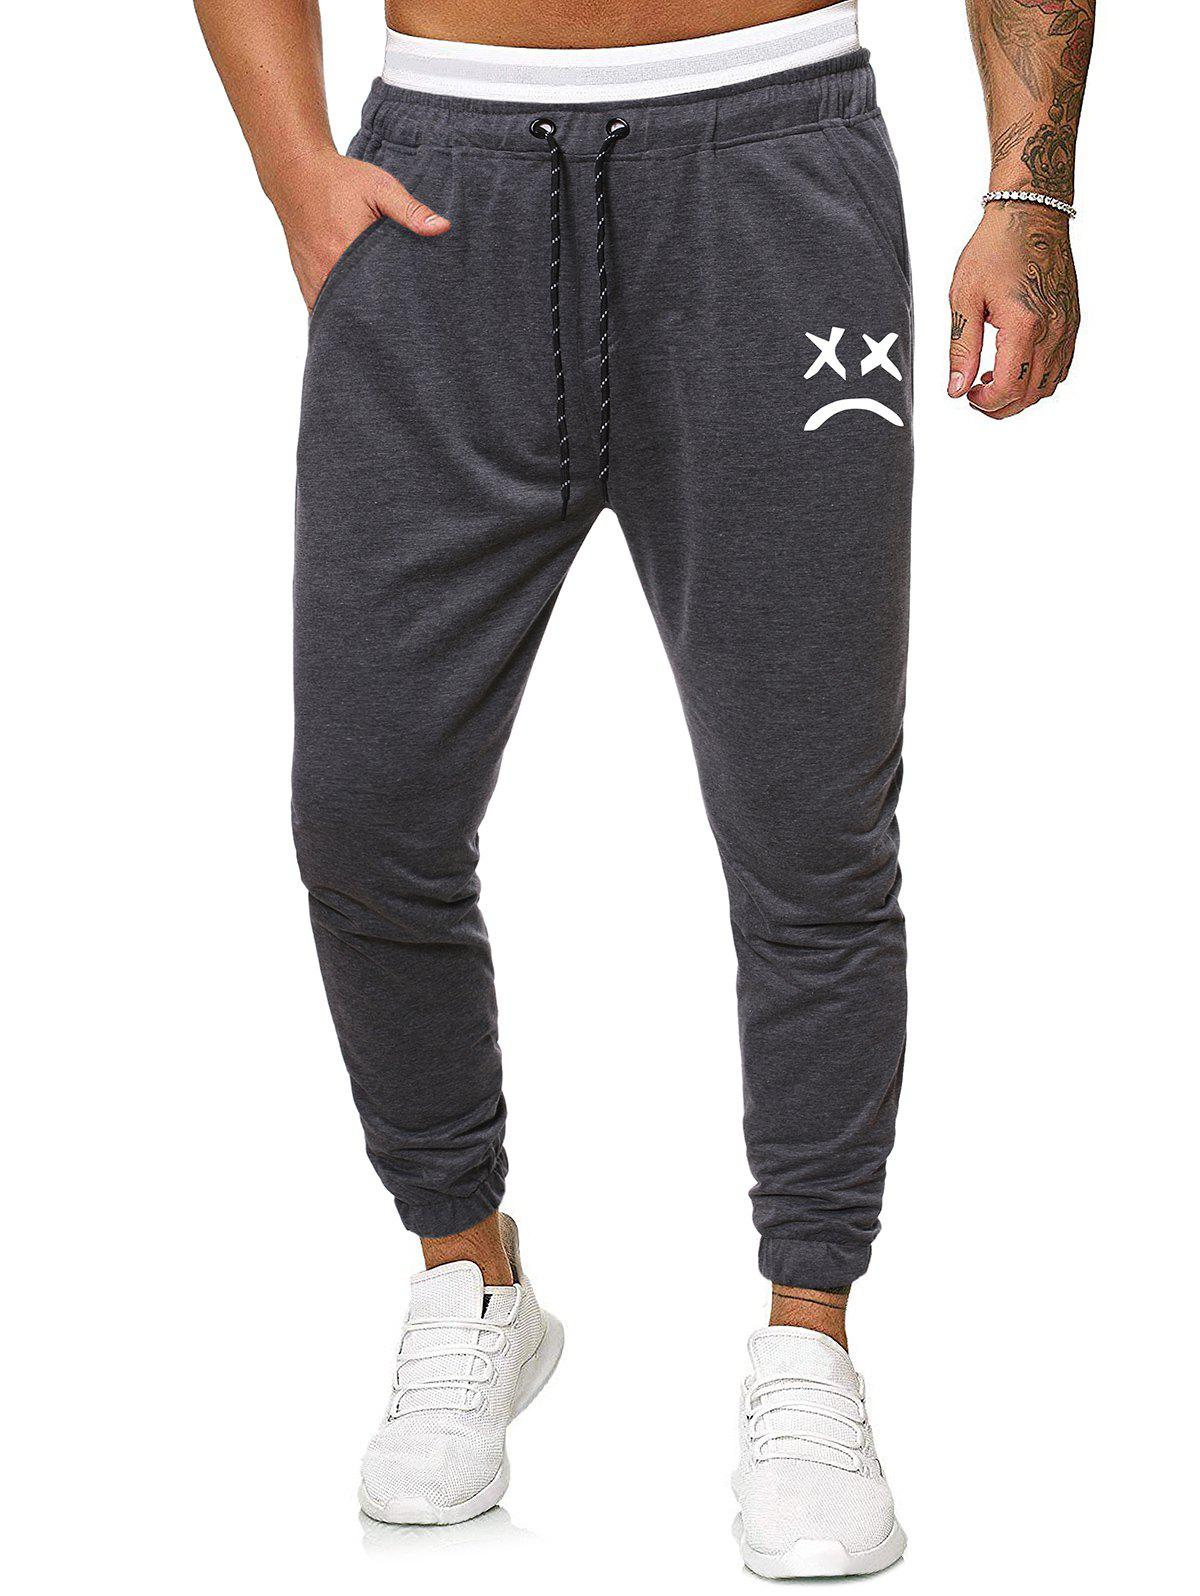 Fashion Funny Face Graphic Casual Drawstring Sweatpants